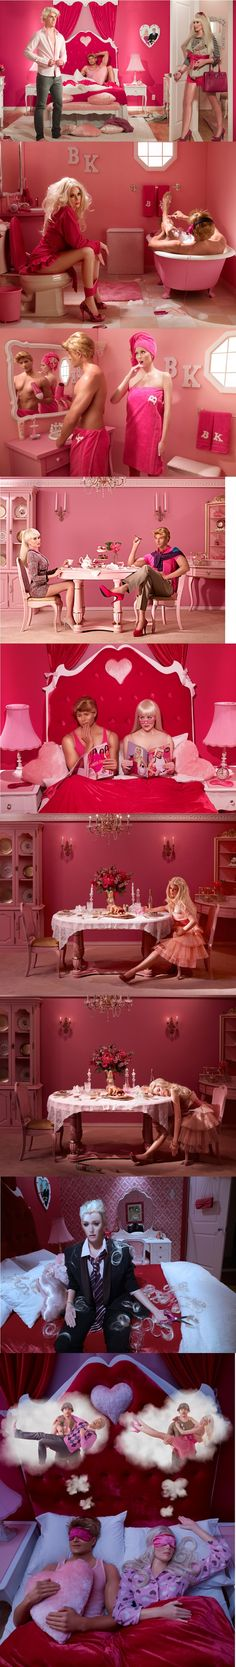 BARBIE AND KEN IN REAL LIFE… WHO EVER CAME UP WITH THIS PHOTOSHOOT WAS GENIUS    HAHAHA